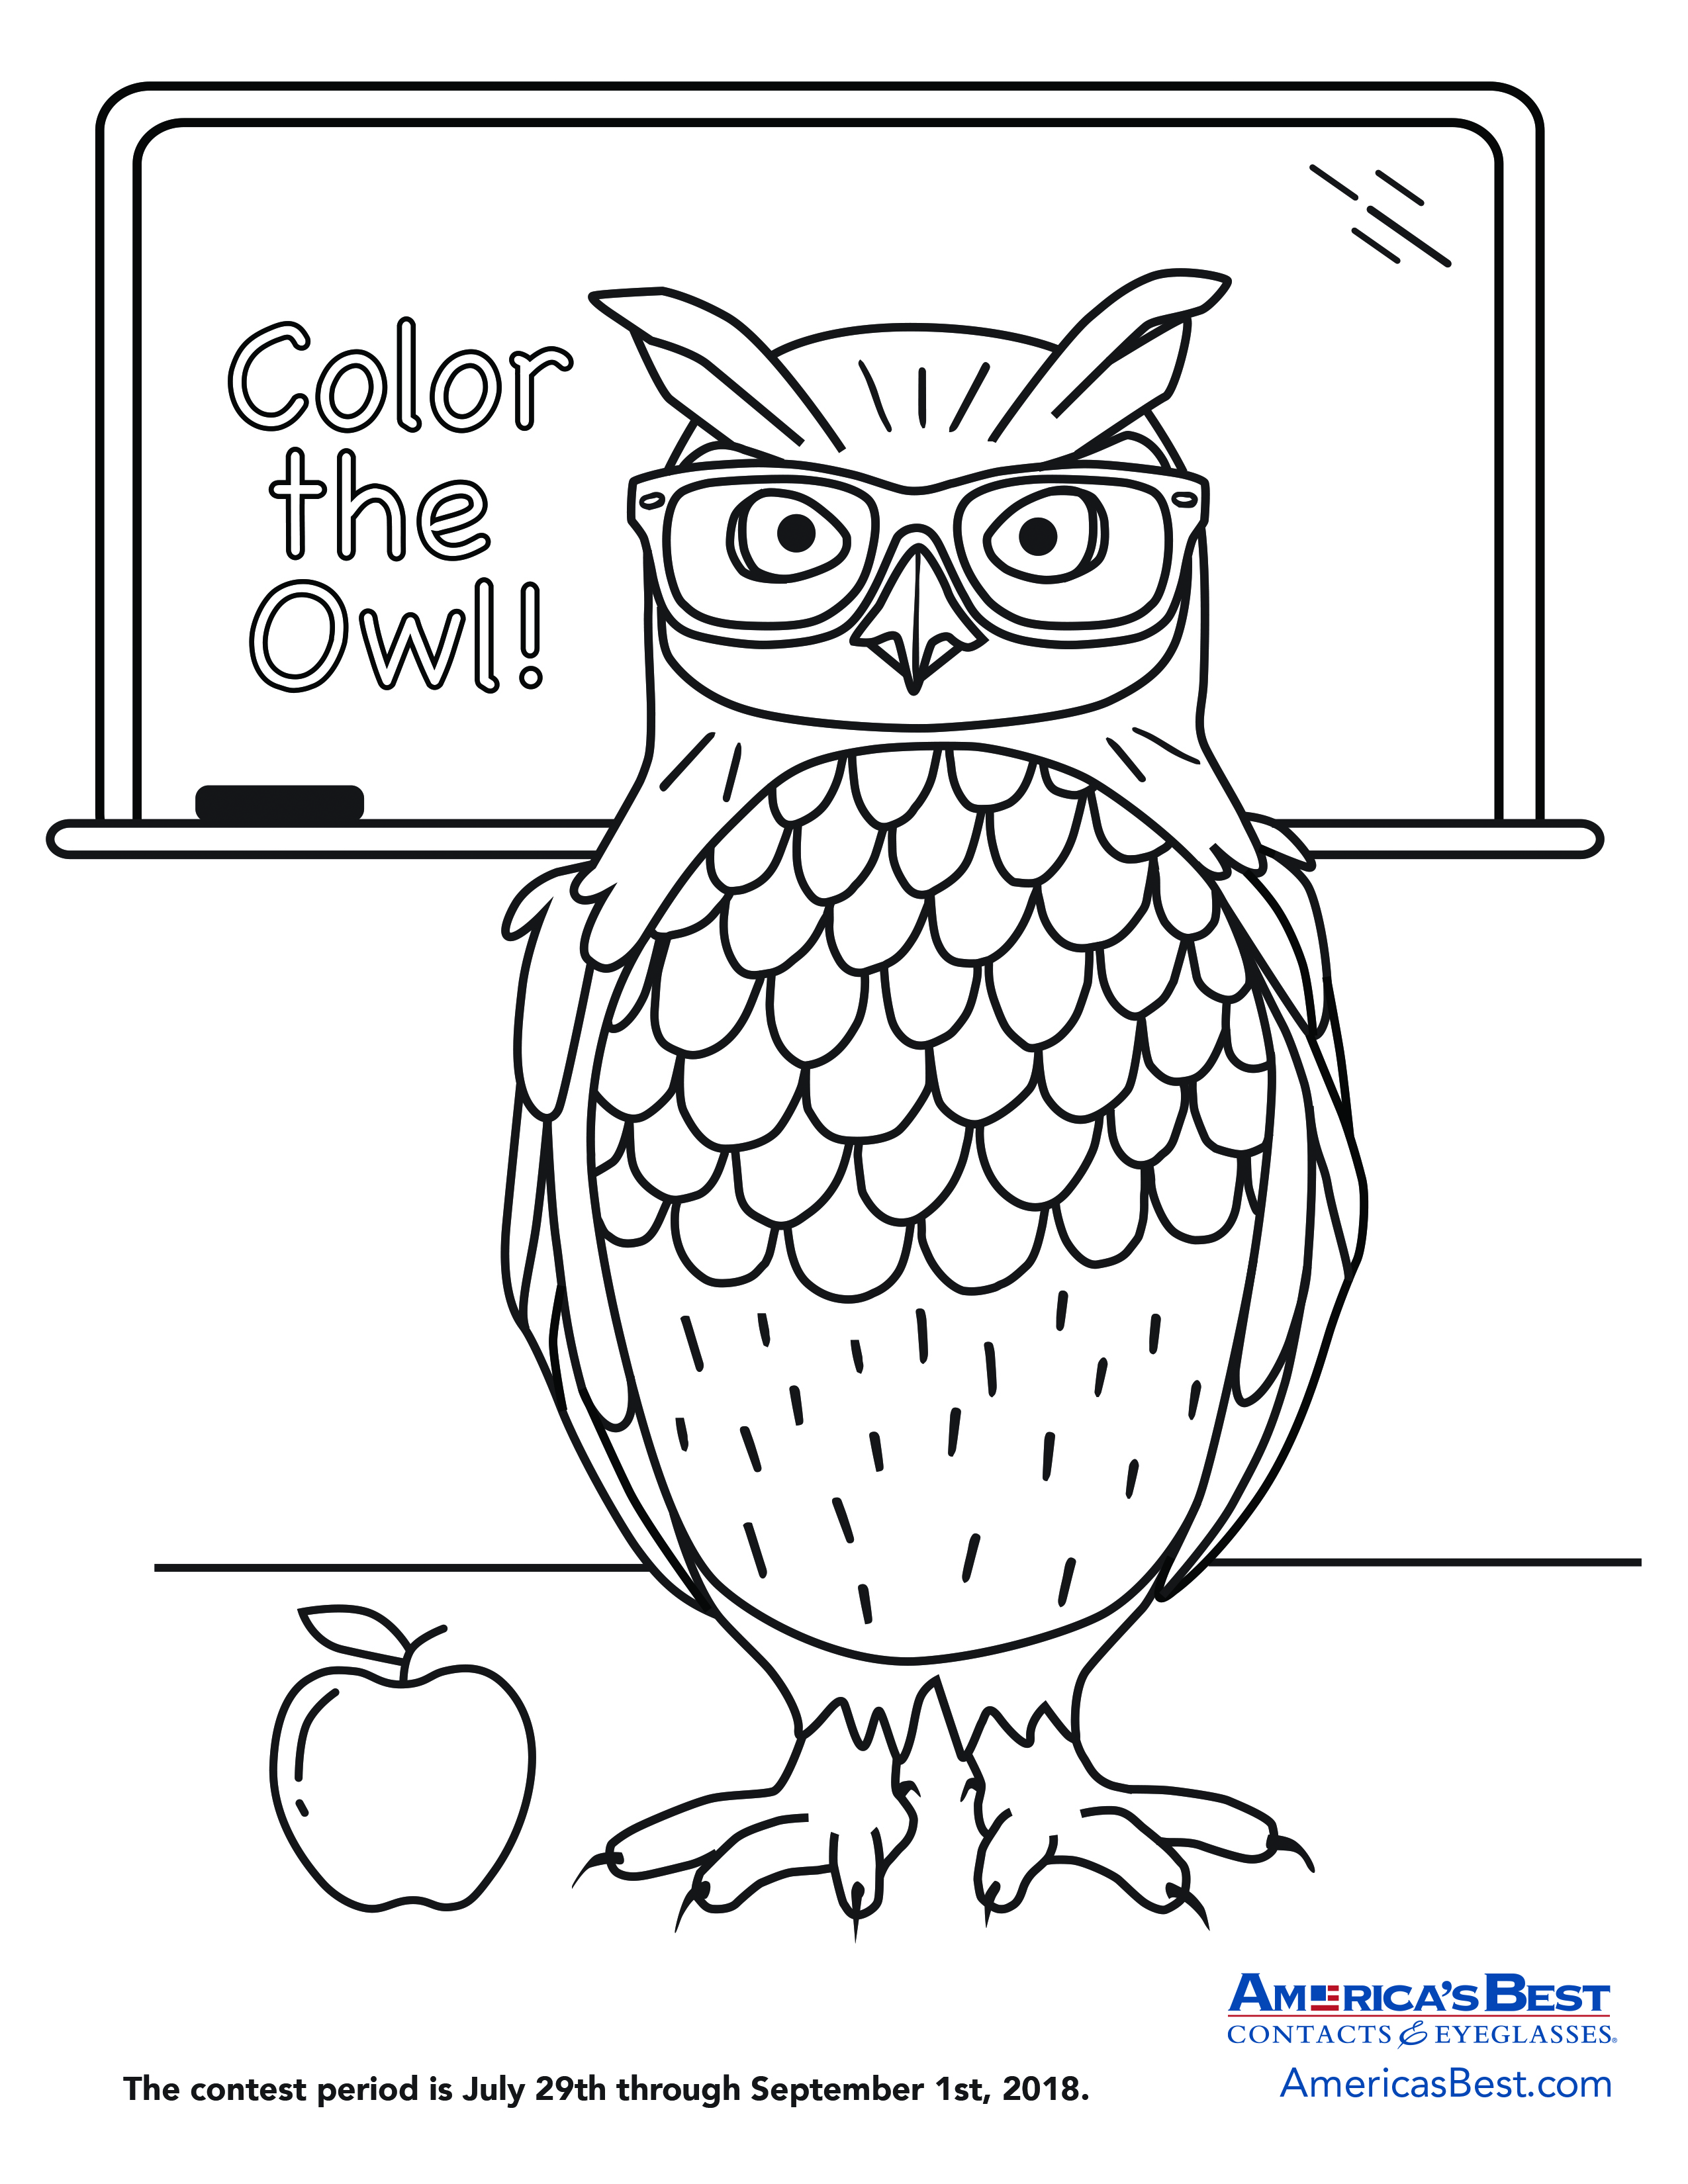 - 2018 America's Best Color The Owl Sweepstakes My Best Eyeglasses